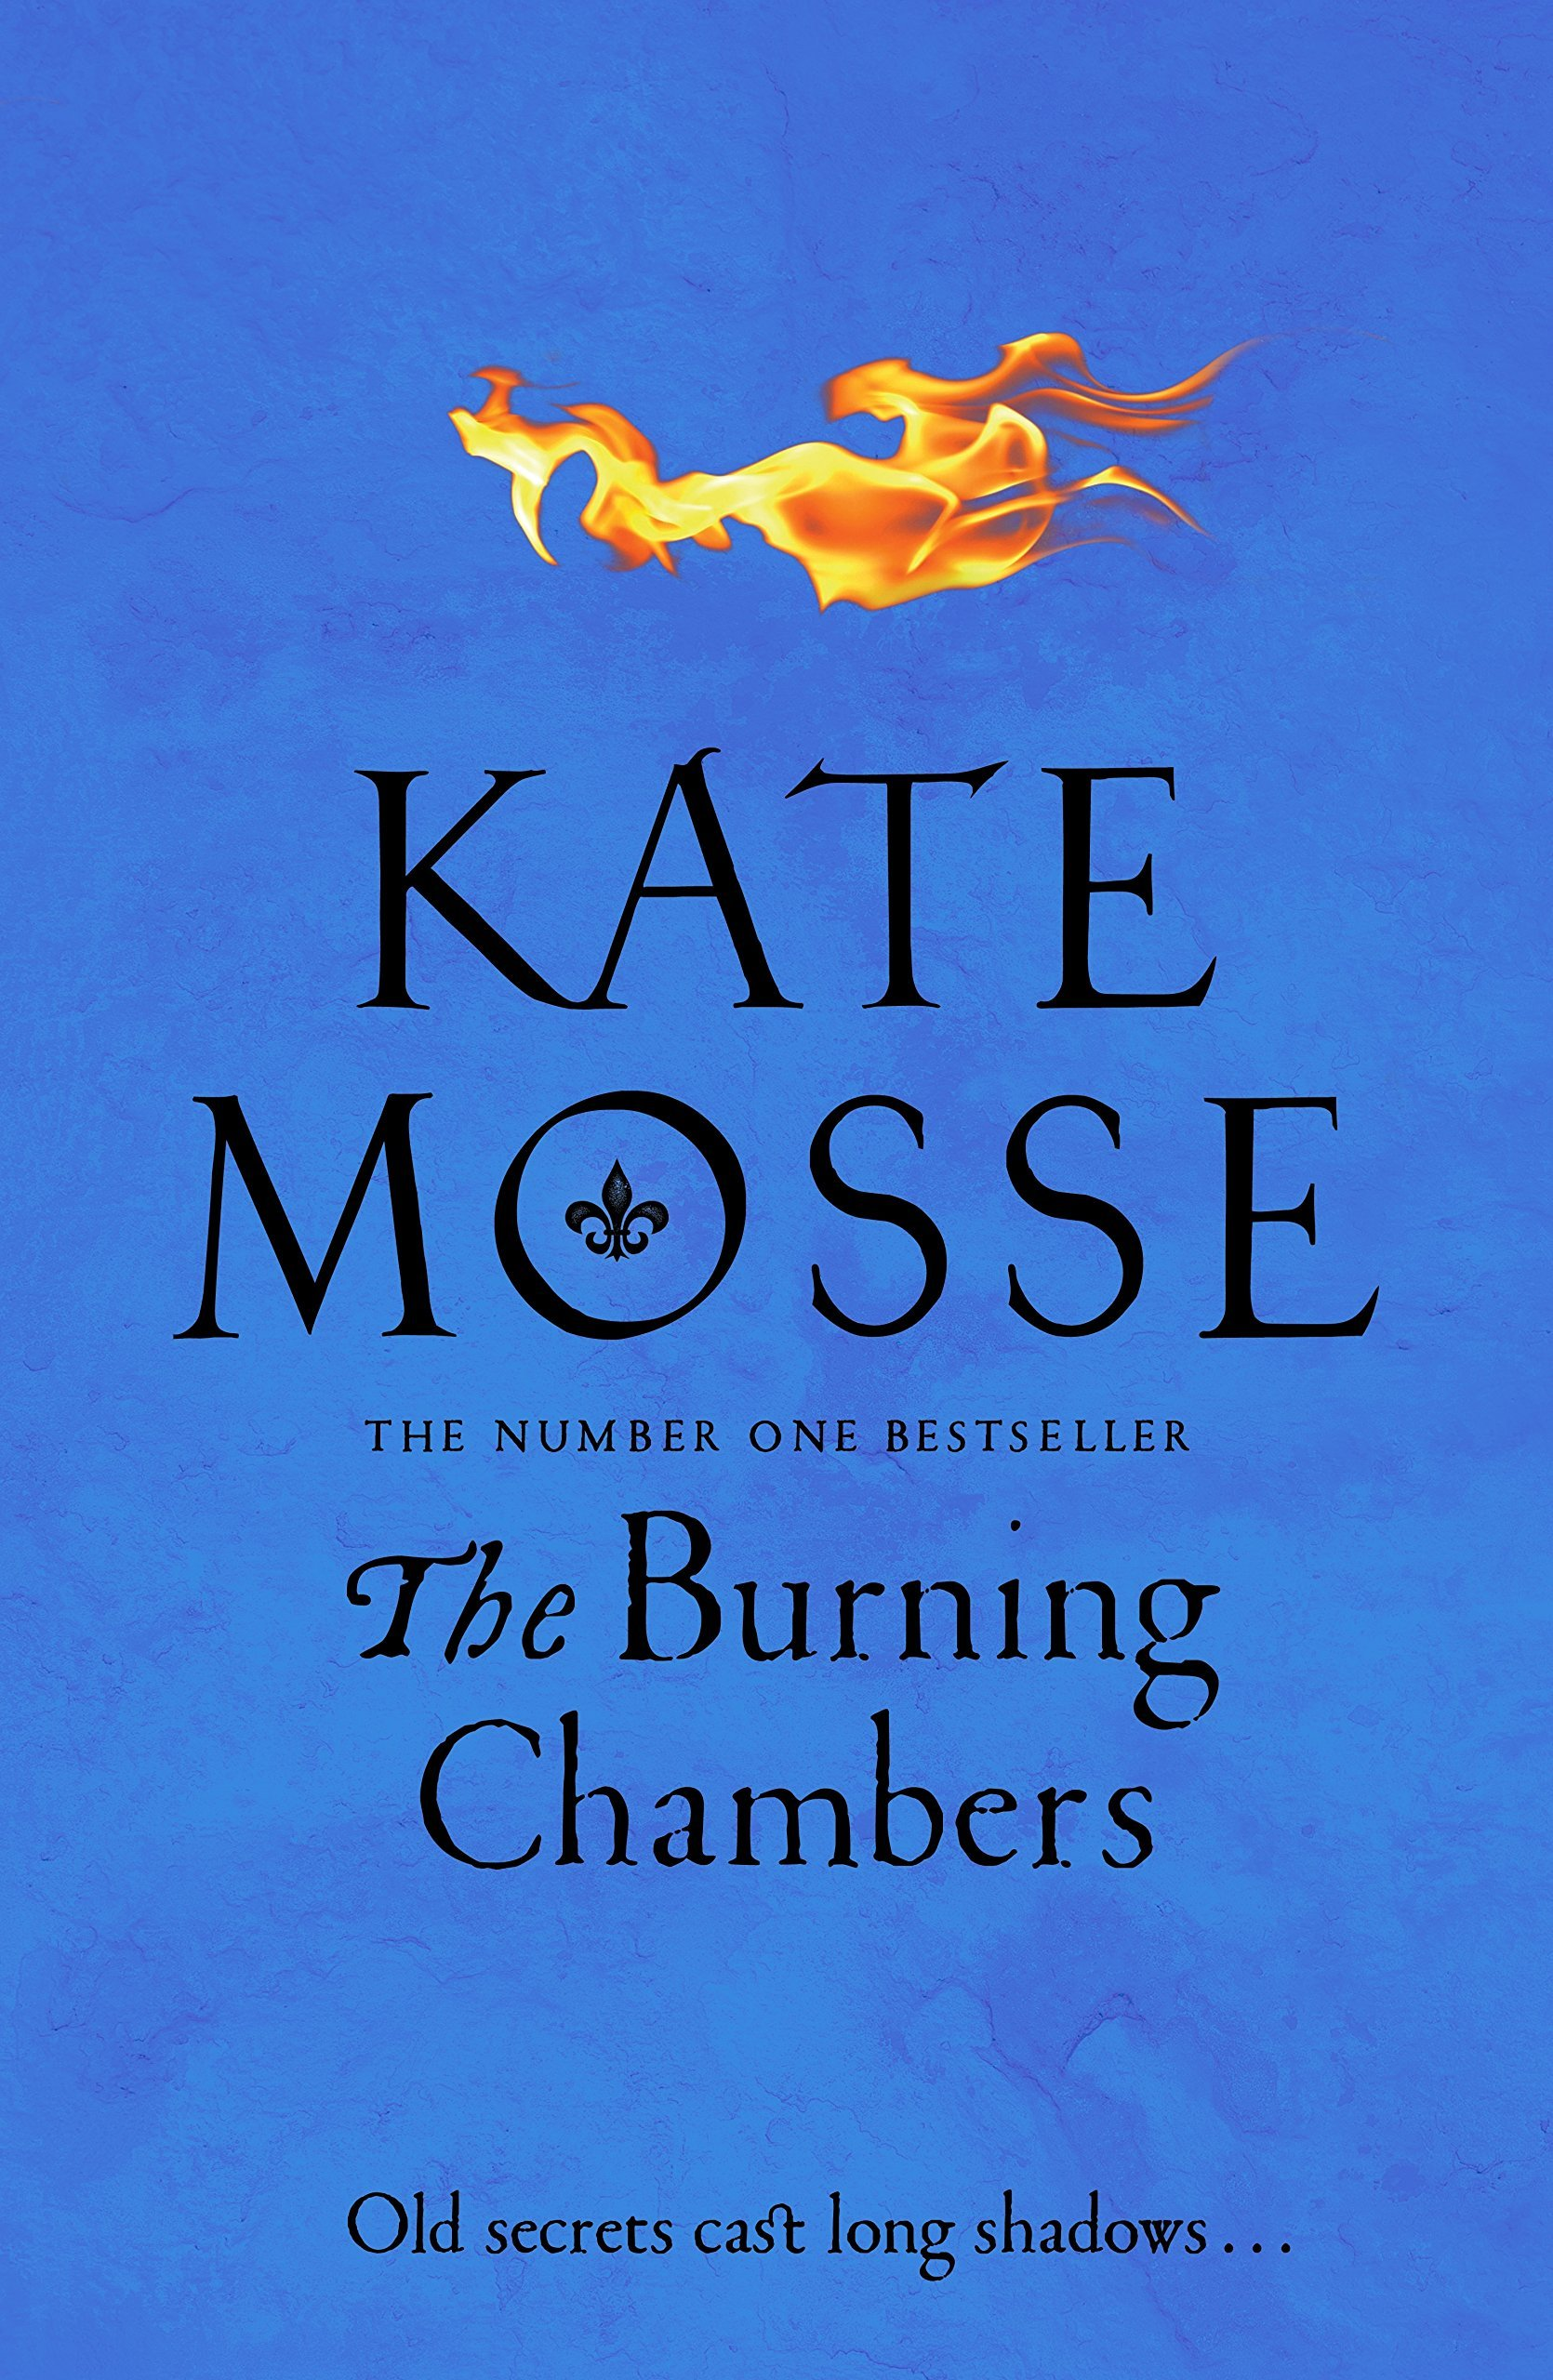 The Burning Chambers by Kate Mosse